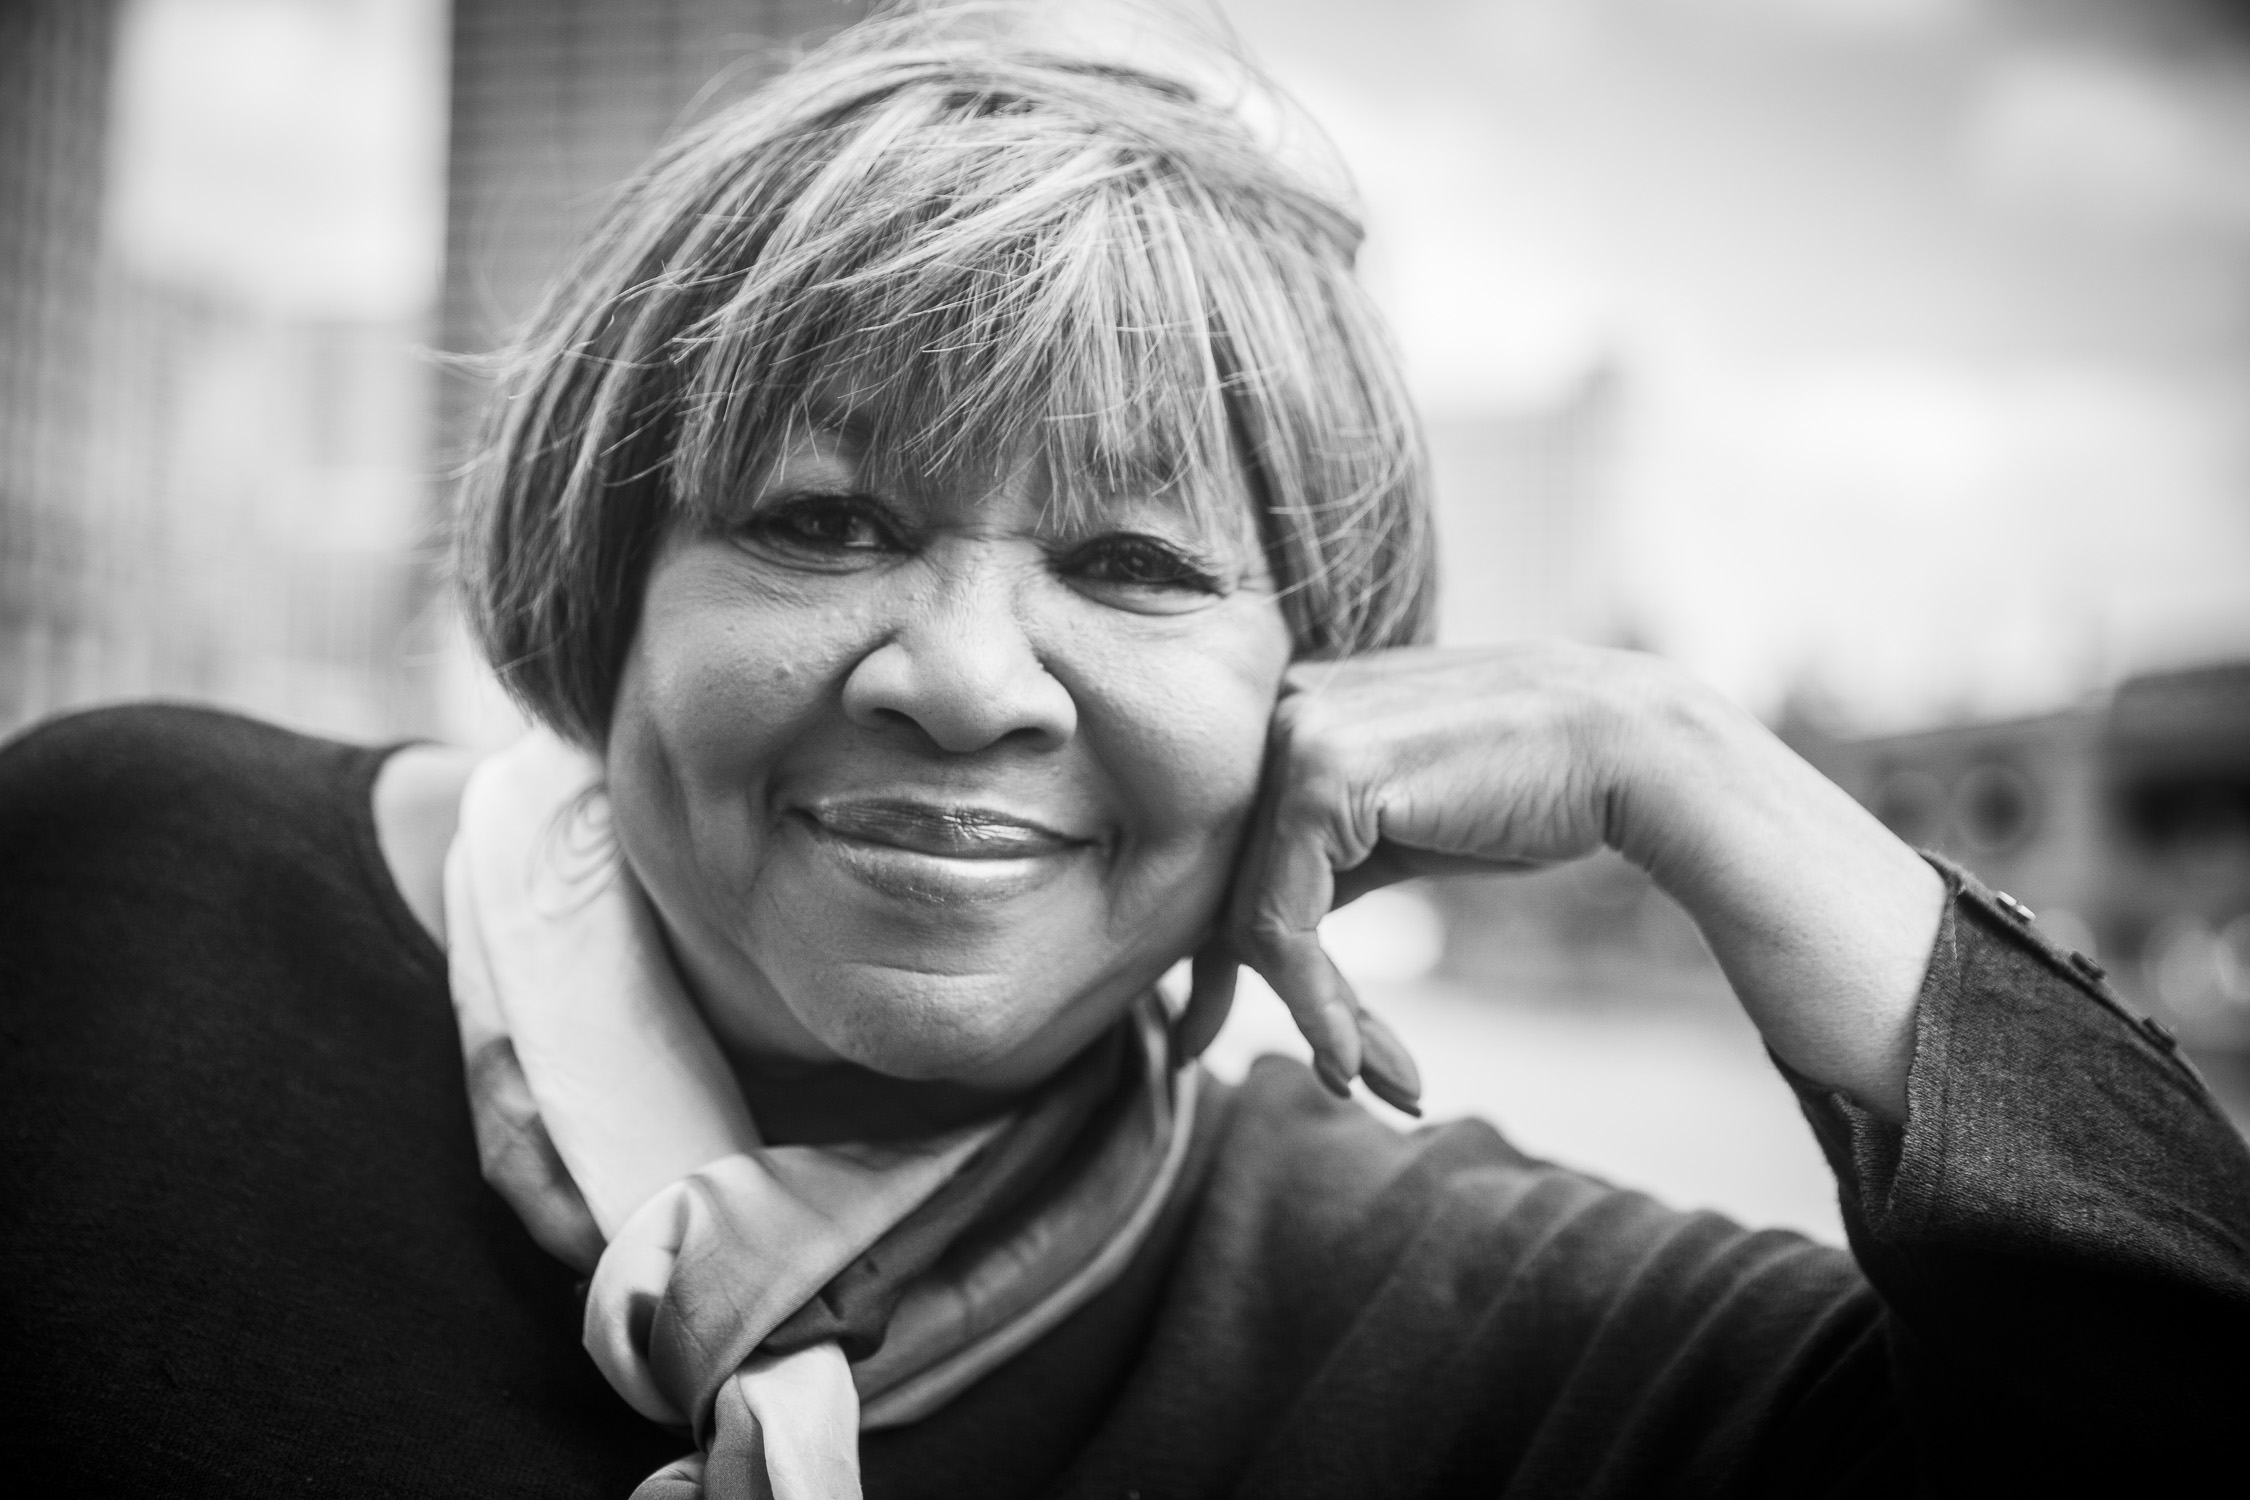 082217_Mavis_Staples-354.jpg